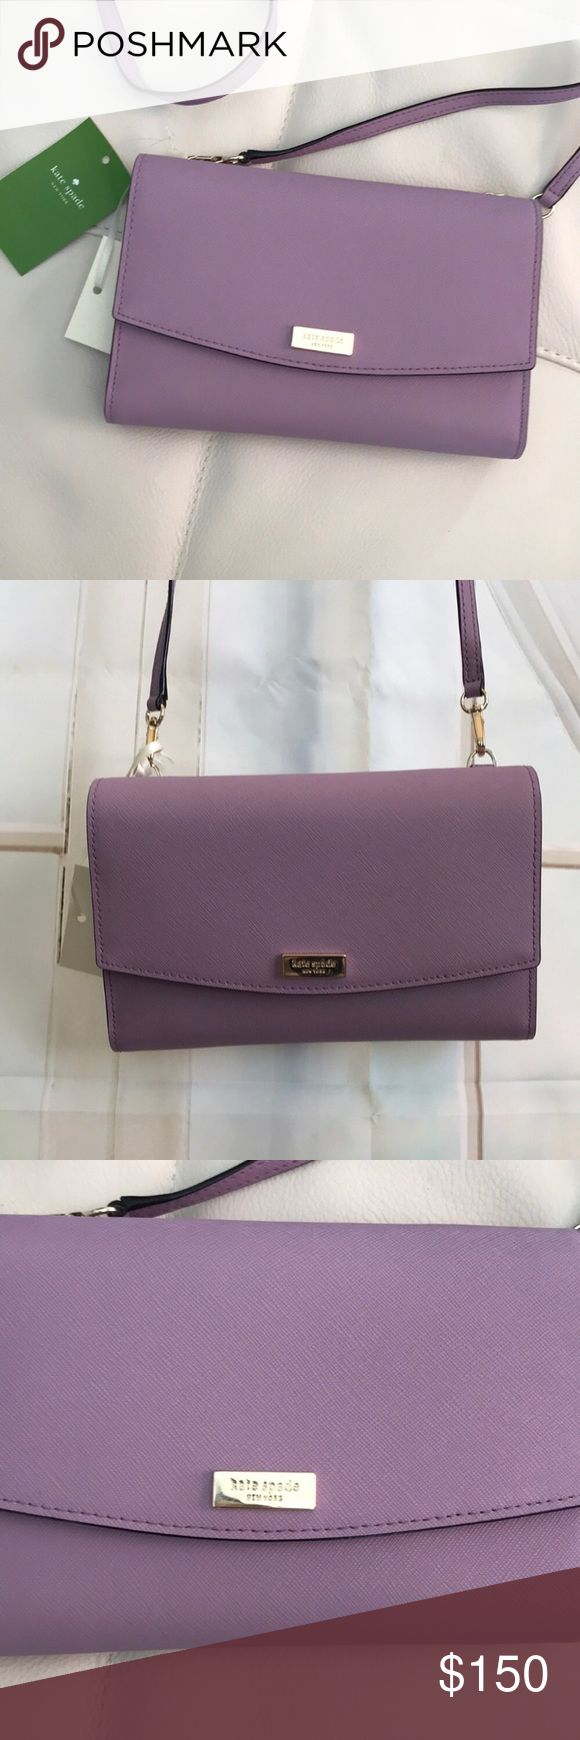 """NWT KATE SPADE WINNI LAUREL WAY LILAC CROSSBODY Authentic KATE SPADE Winni Laural Way Clutch/Wallet/Crossbody  WLRU2667 Color is Lilacpetal (light purple) Has a detachable leather strap with a 24"""" drop length. Double snap closure. One exterior full length slip pocket. One interior full length slip pocket. One interior full length zippered storage pocket. Seven interior credit card slots. Approximate measurements: 7 1/4"""" x 4 3/4"""" x 1 1/2"""". Gold colored hardware. MFSRP $199.00  📌NO TRADES…"""